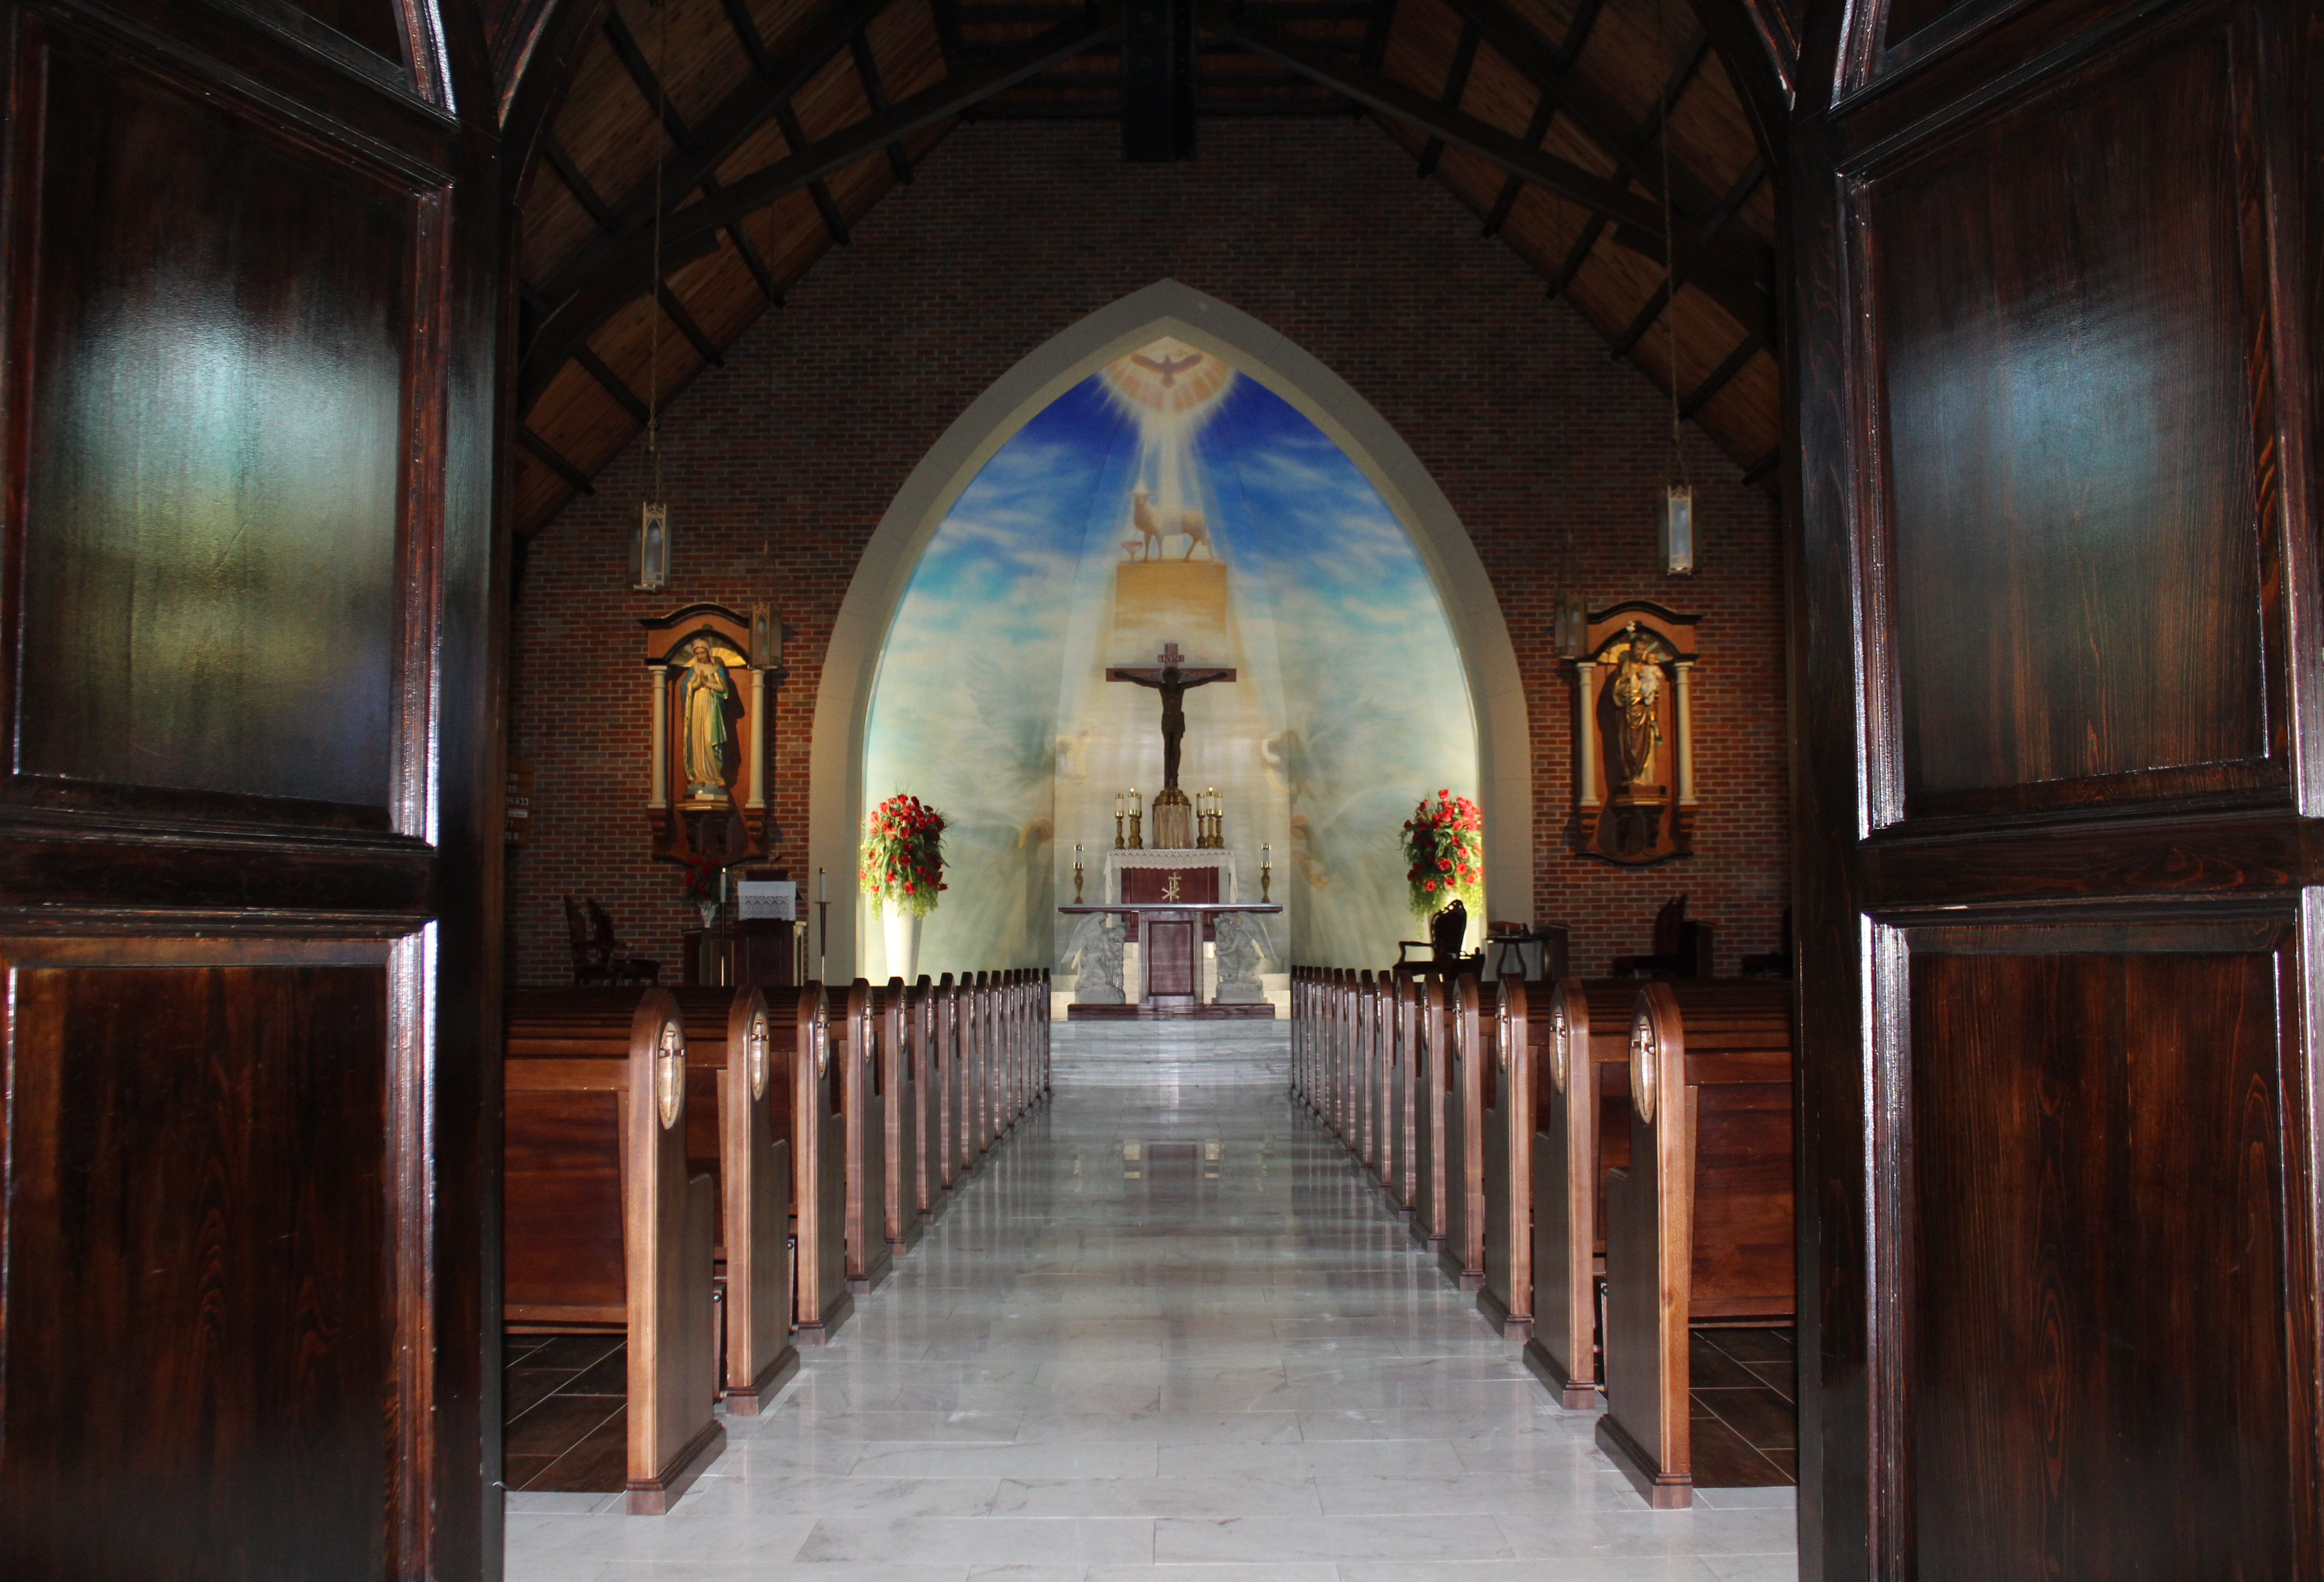 front of church aisle with doors no light copy